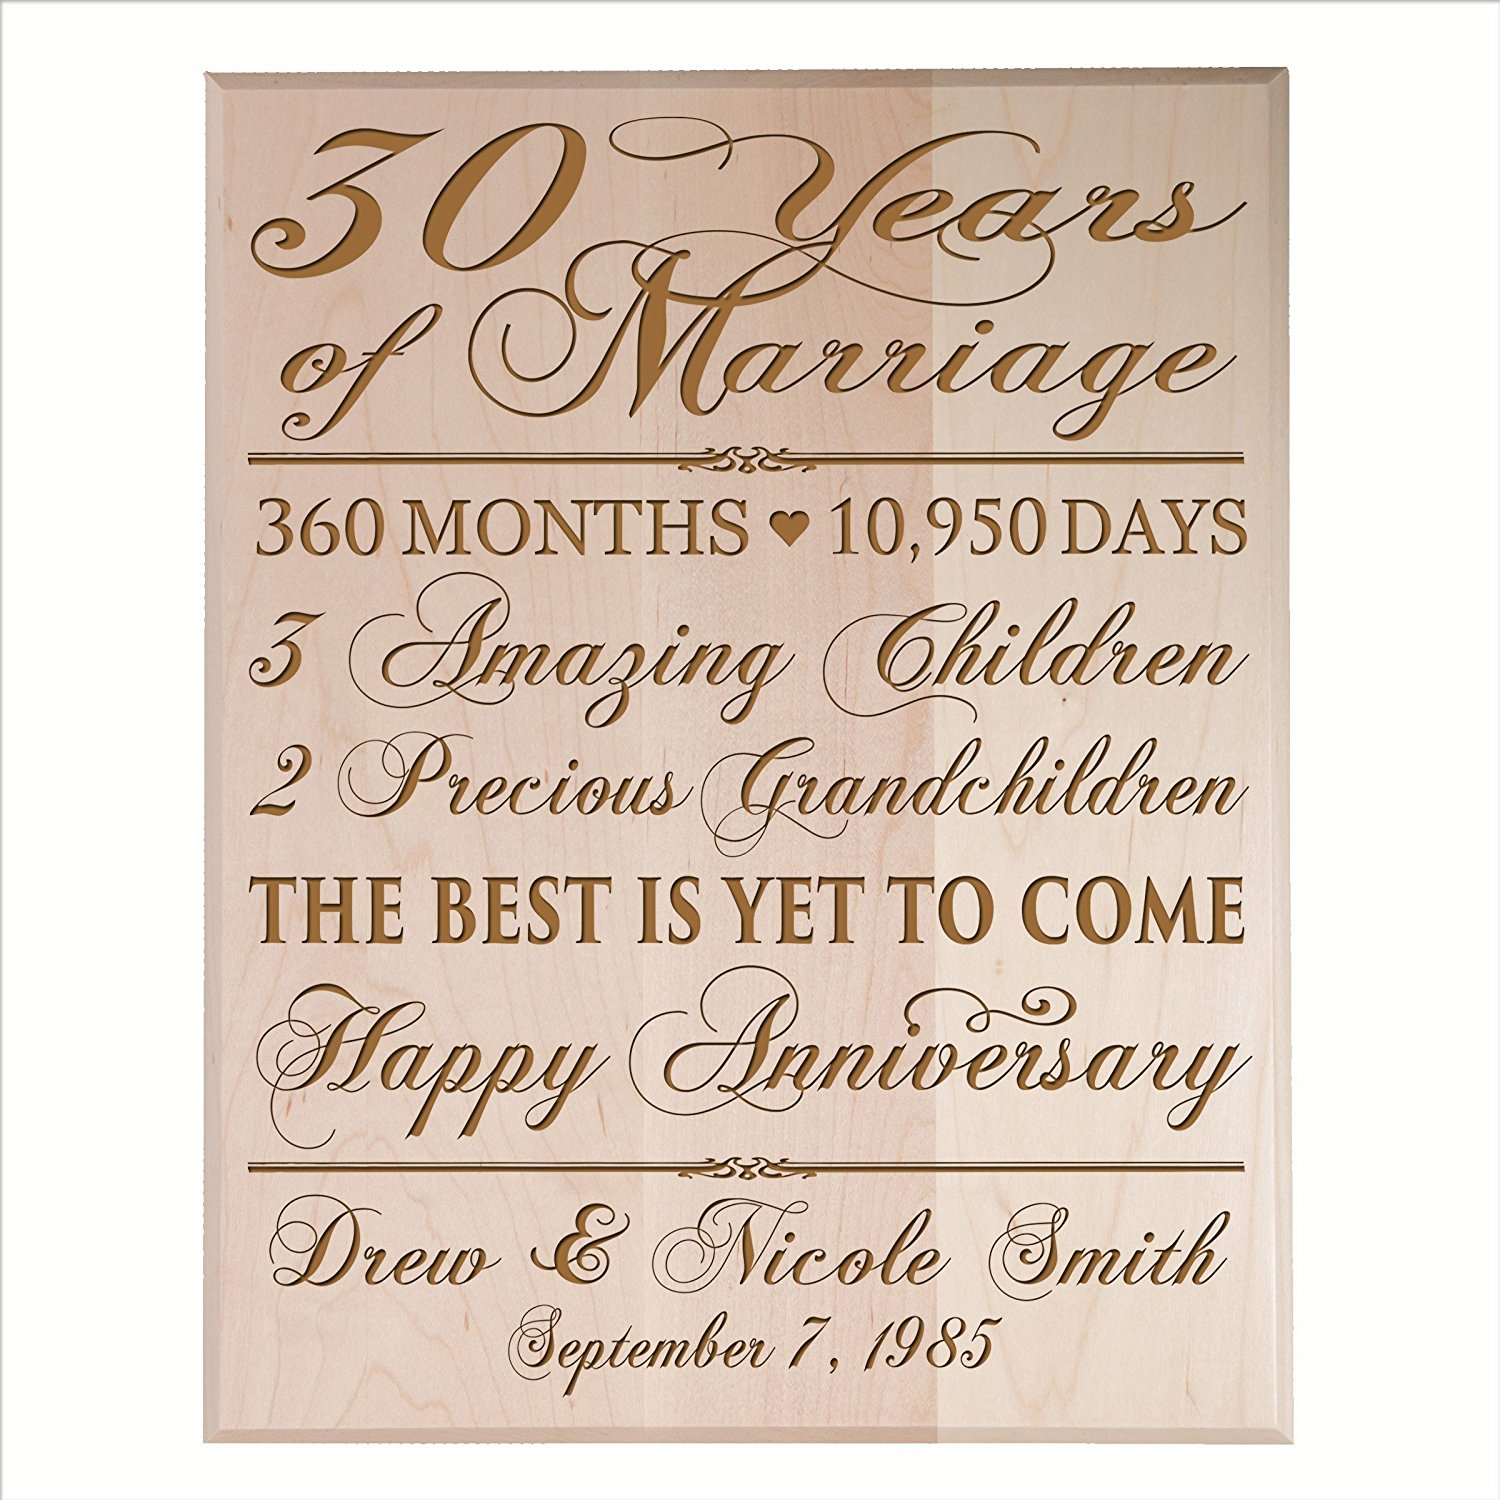 Buy Personalized 30th Anniversary Gifts For Him Her Couple Parents Custom Made 30 Year Anniversary Gifts Ideas Wall Plaque 12 X 15 By Dayspring Milestone Maple Veneer Wood In Cheap Price On Alibaba Com